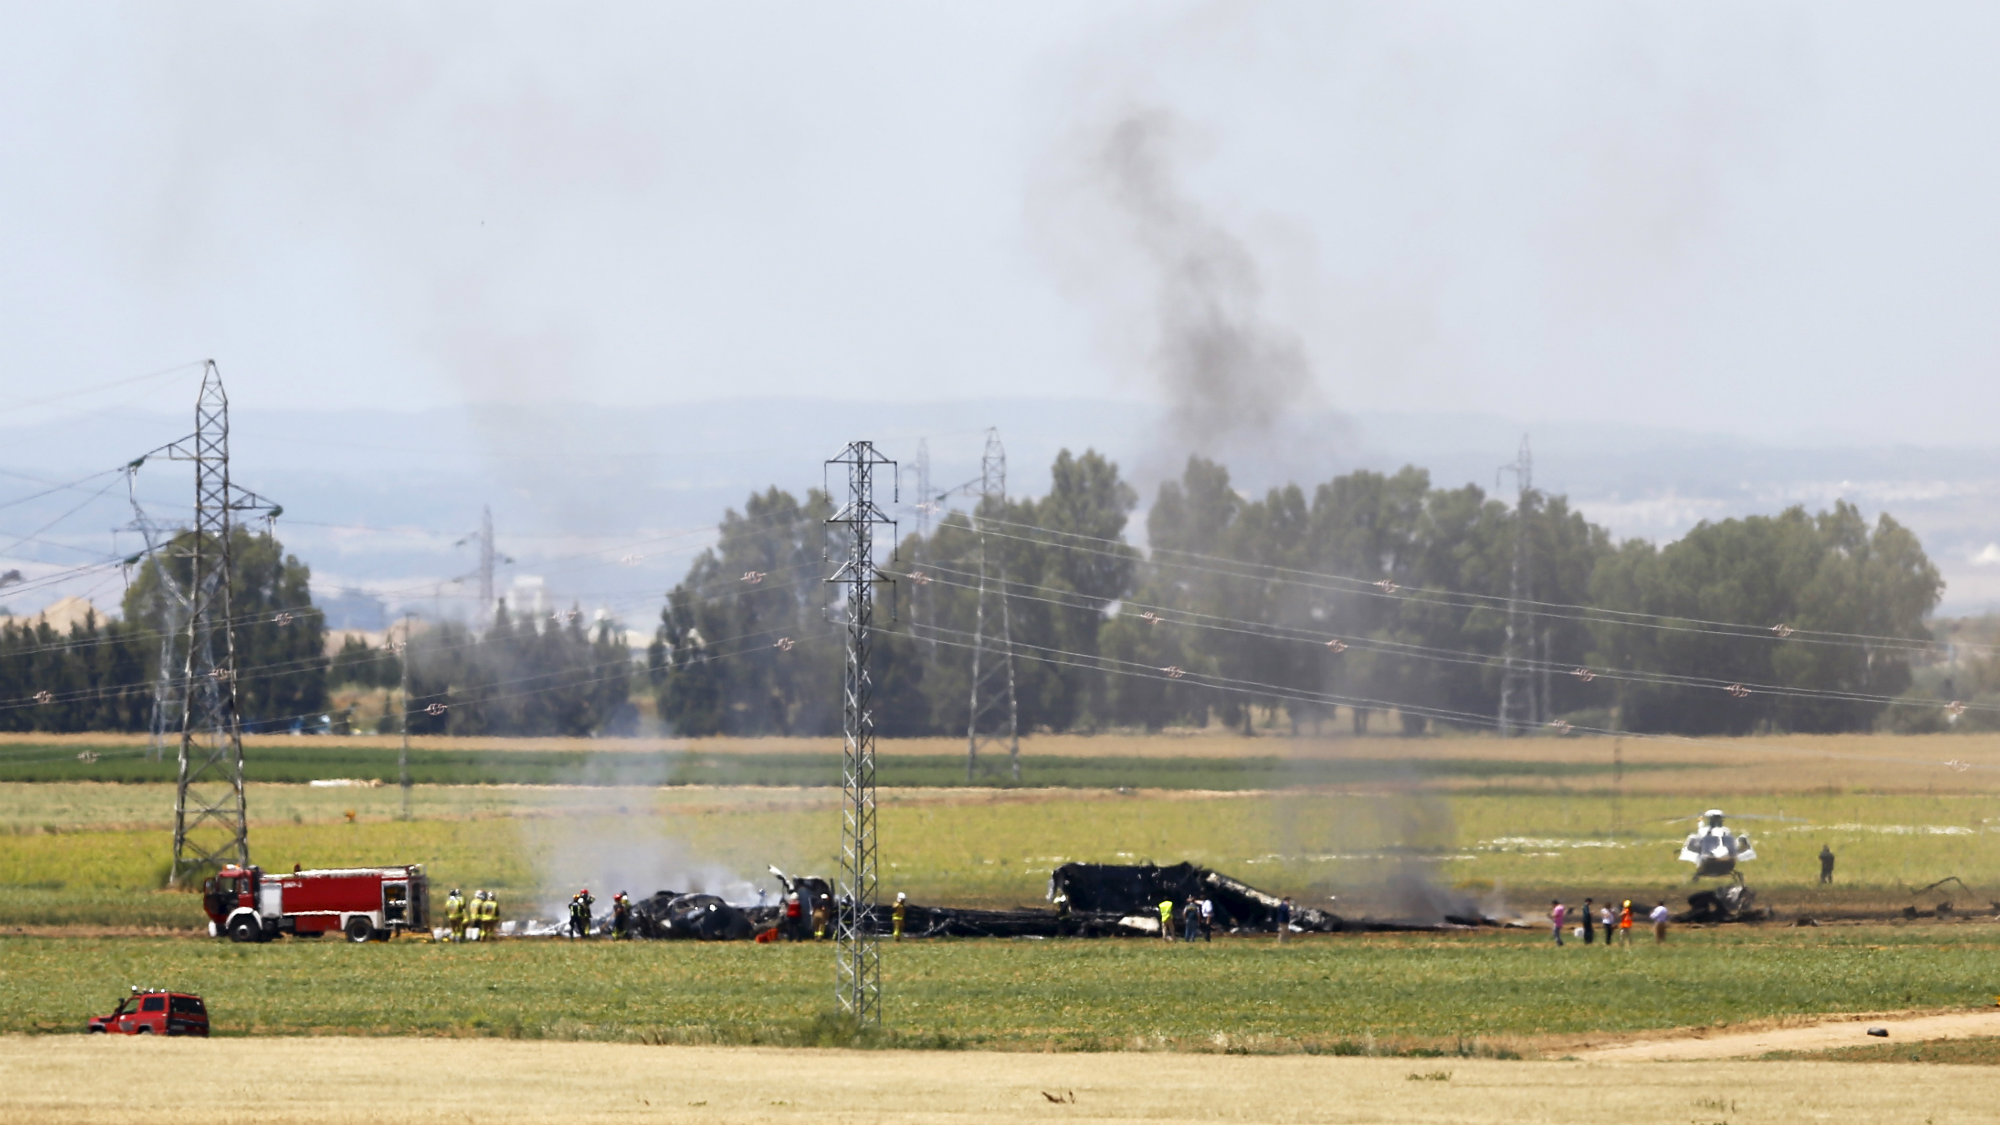 The remains of an Airbus A400M after crashing in a field near Seville on May 9.